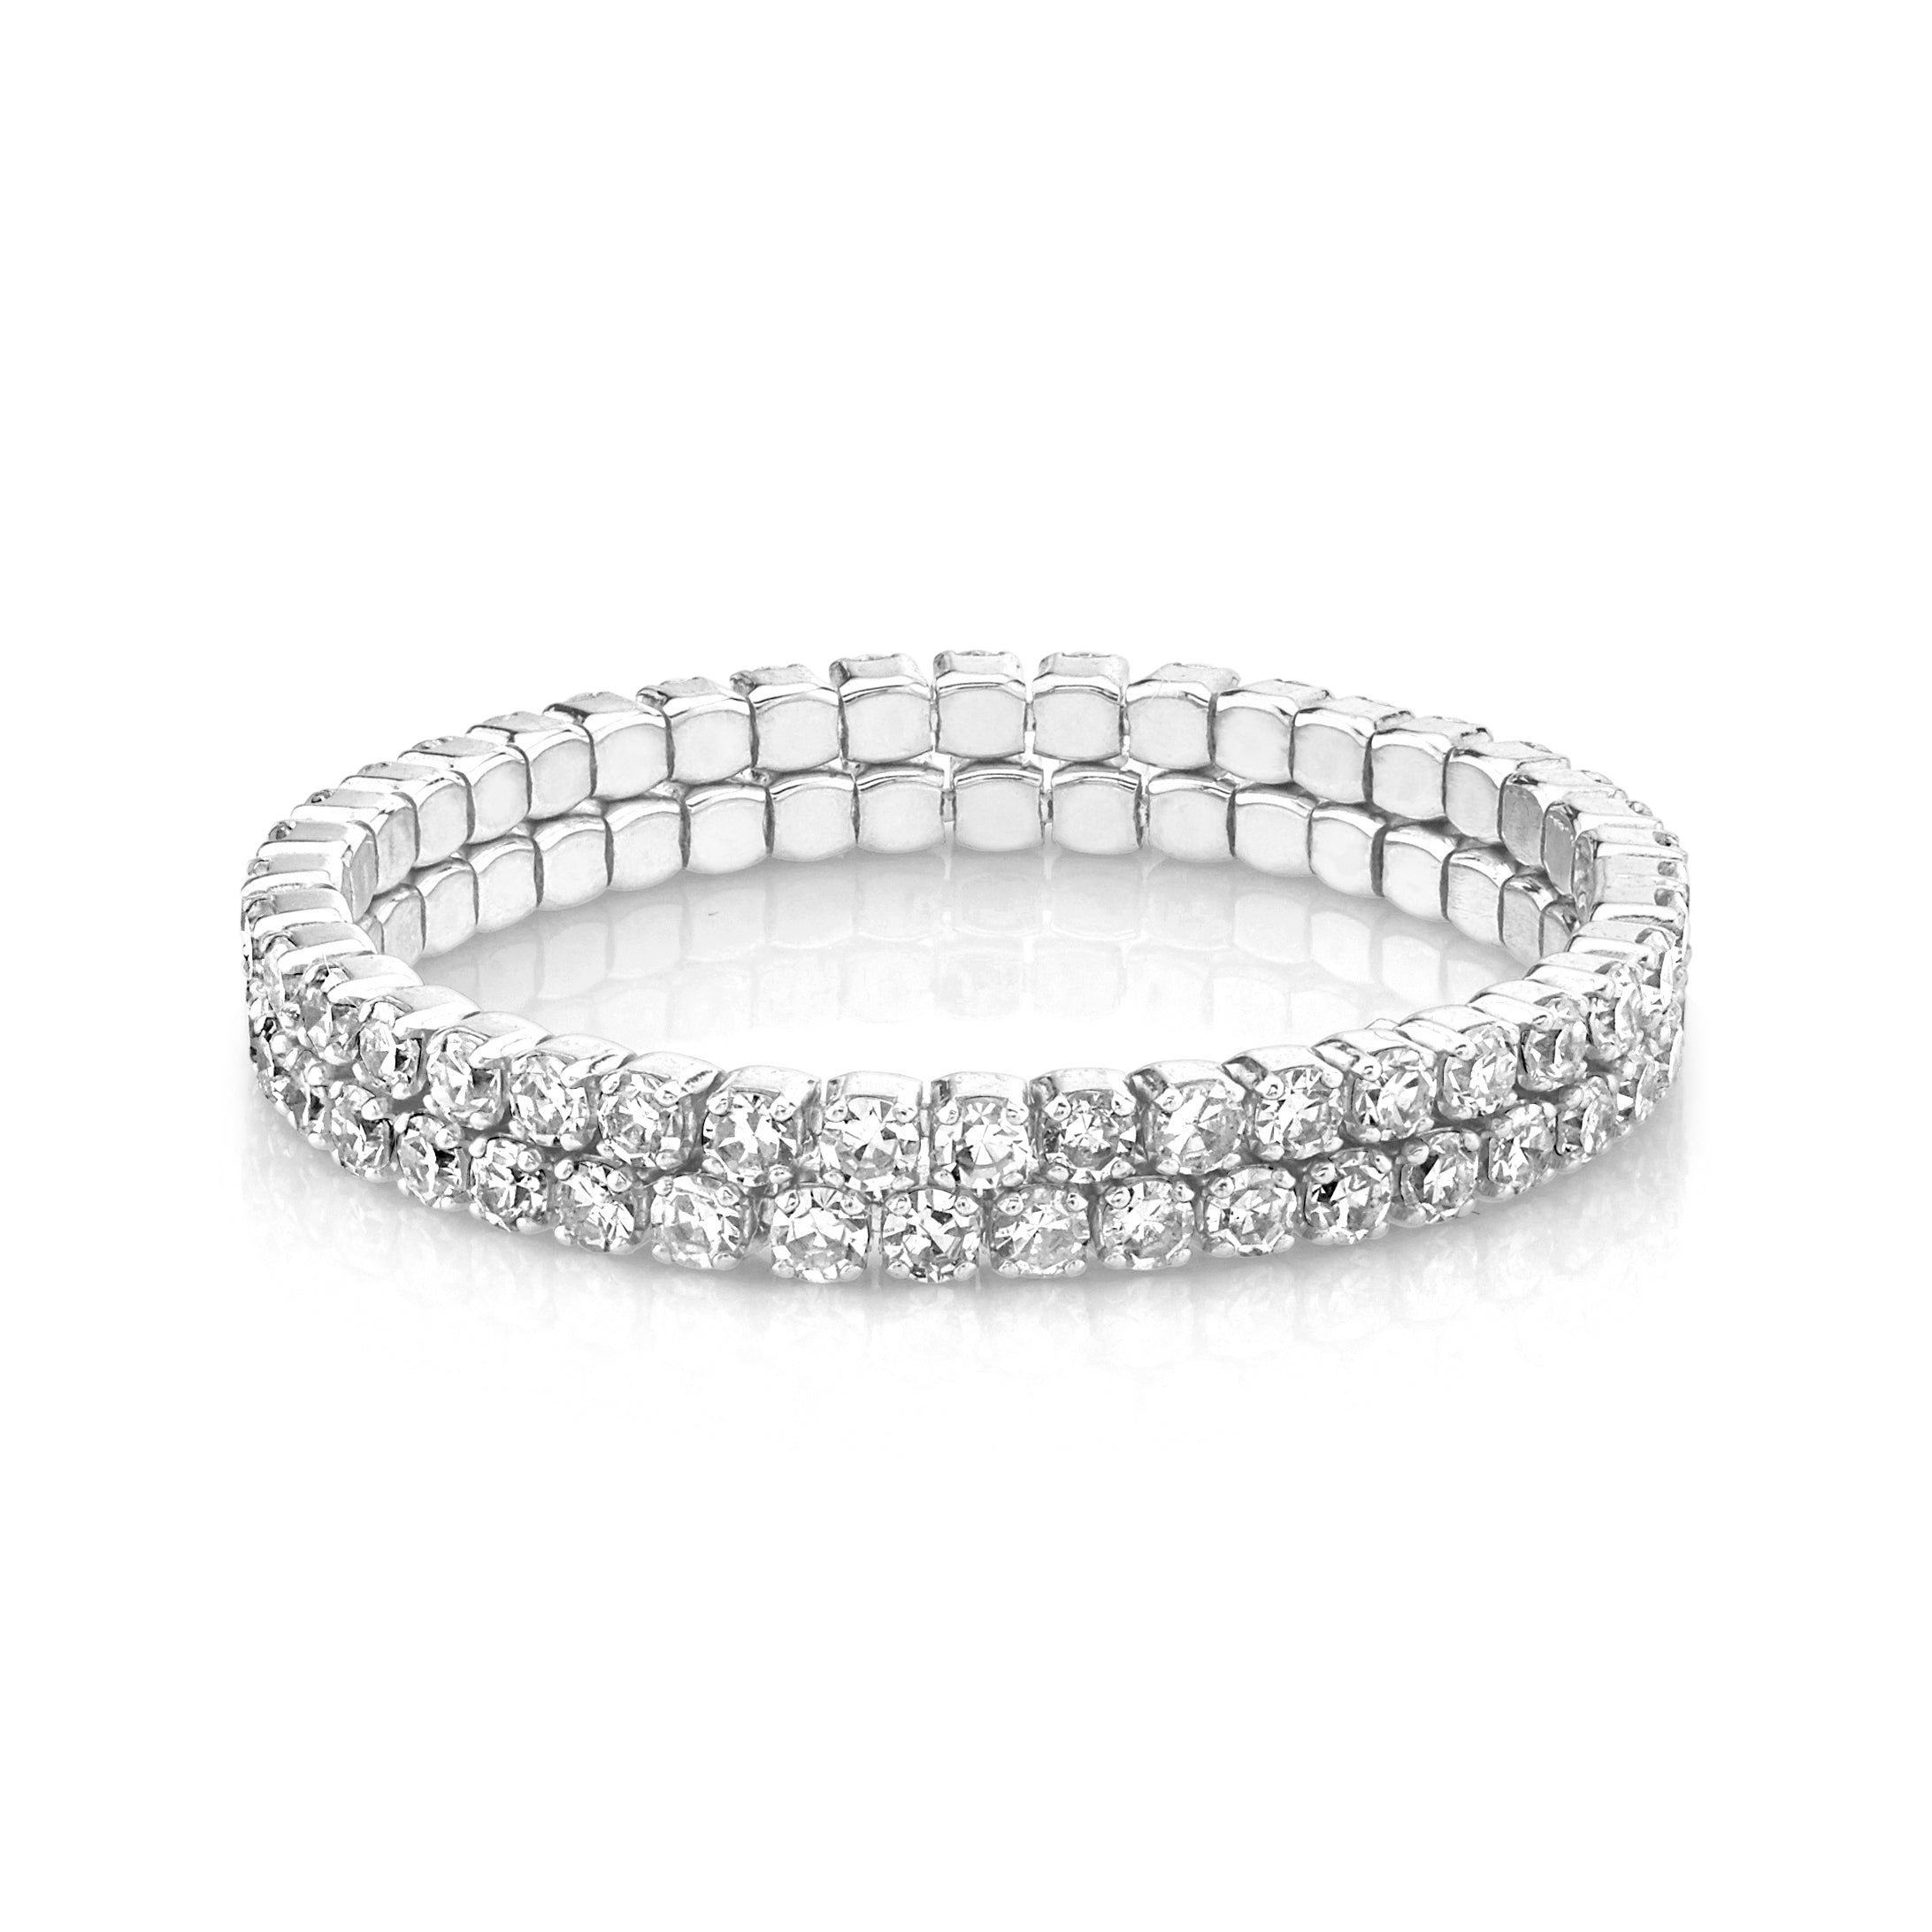 DIAMOND 2 THREAD STACK RING